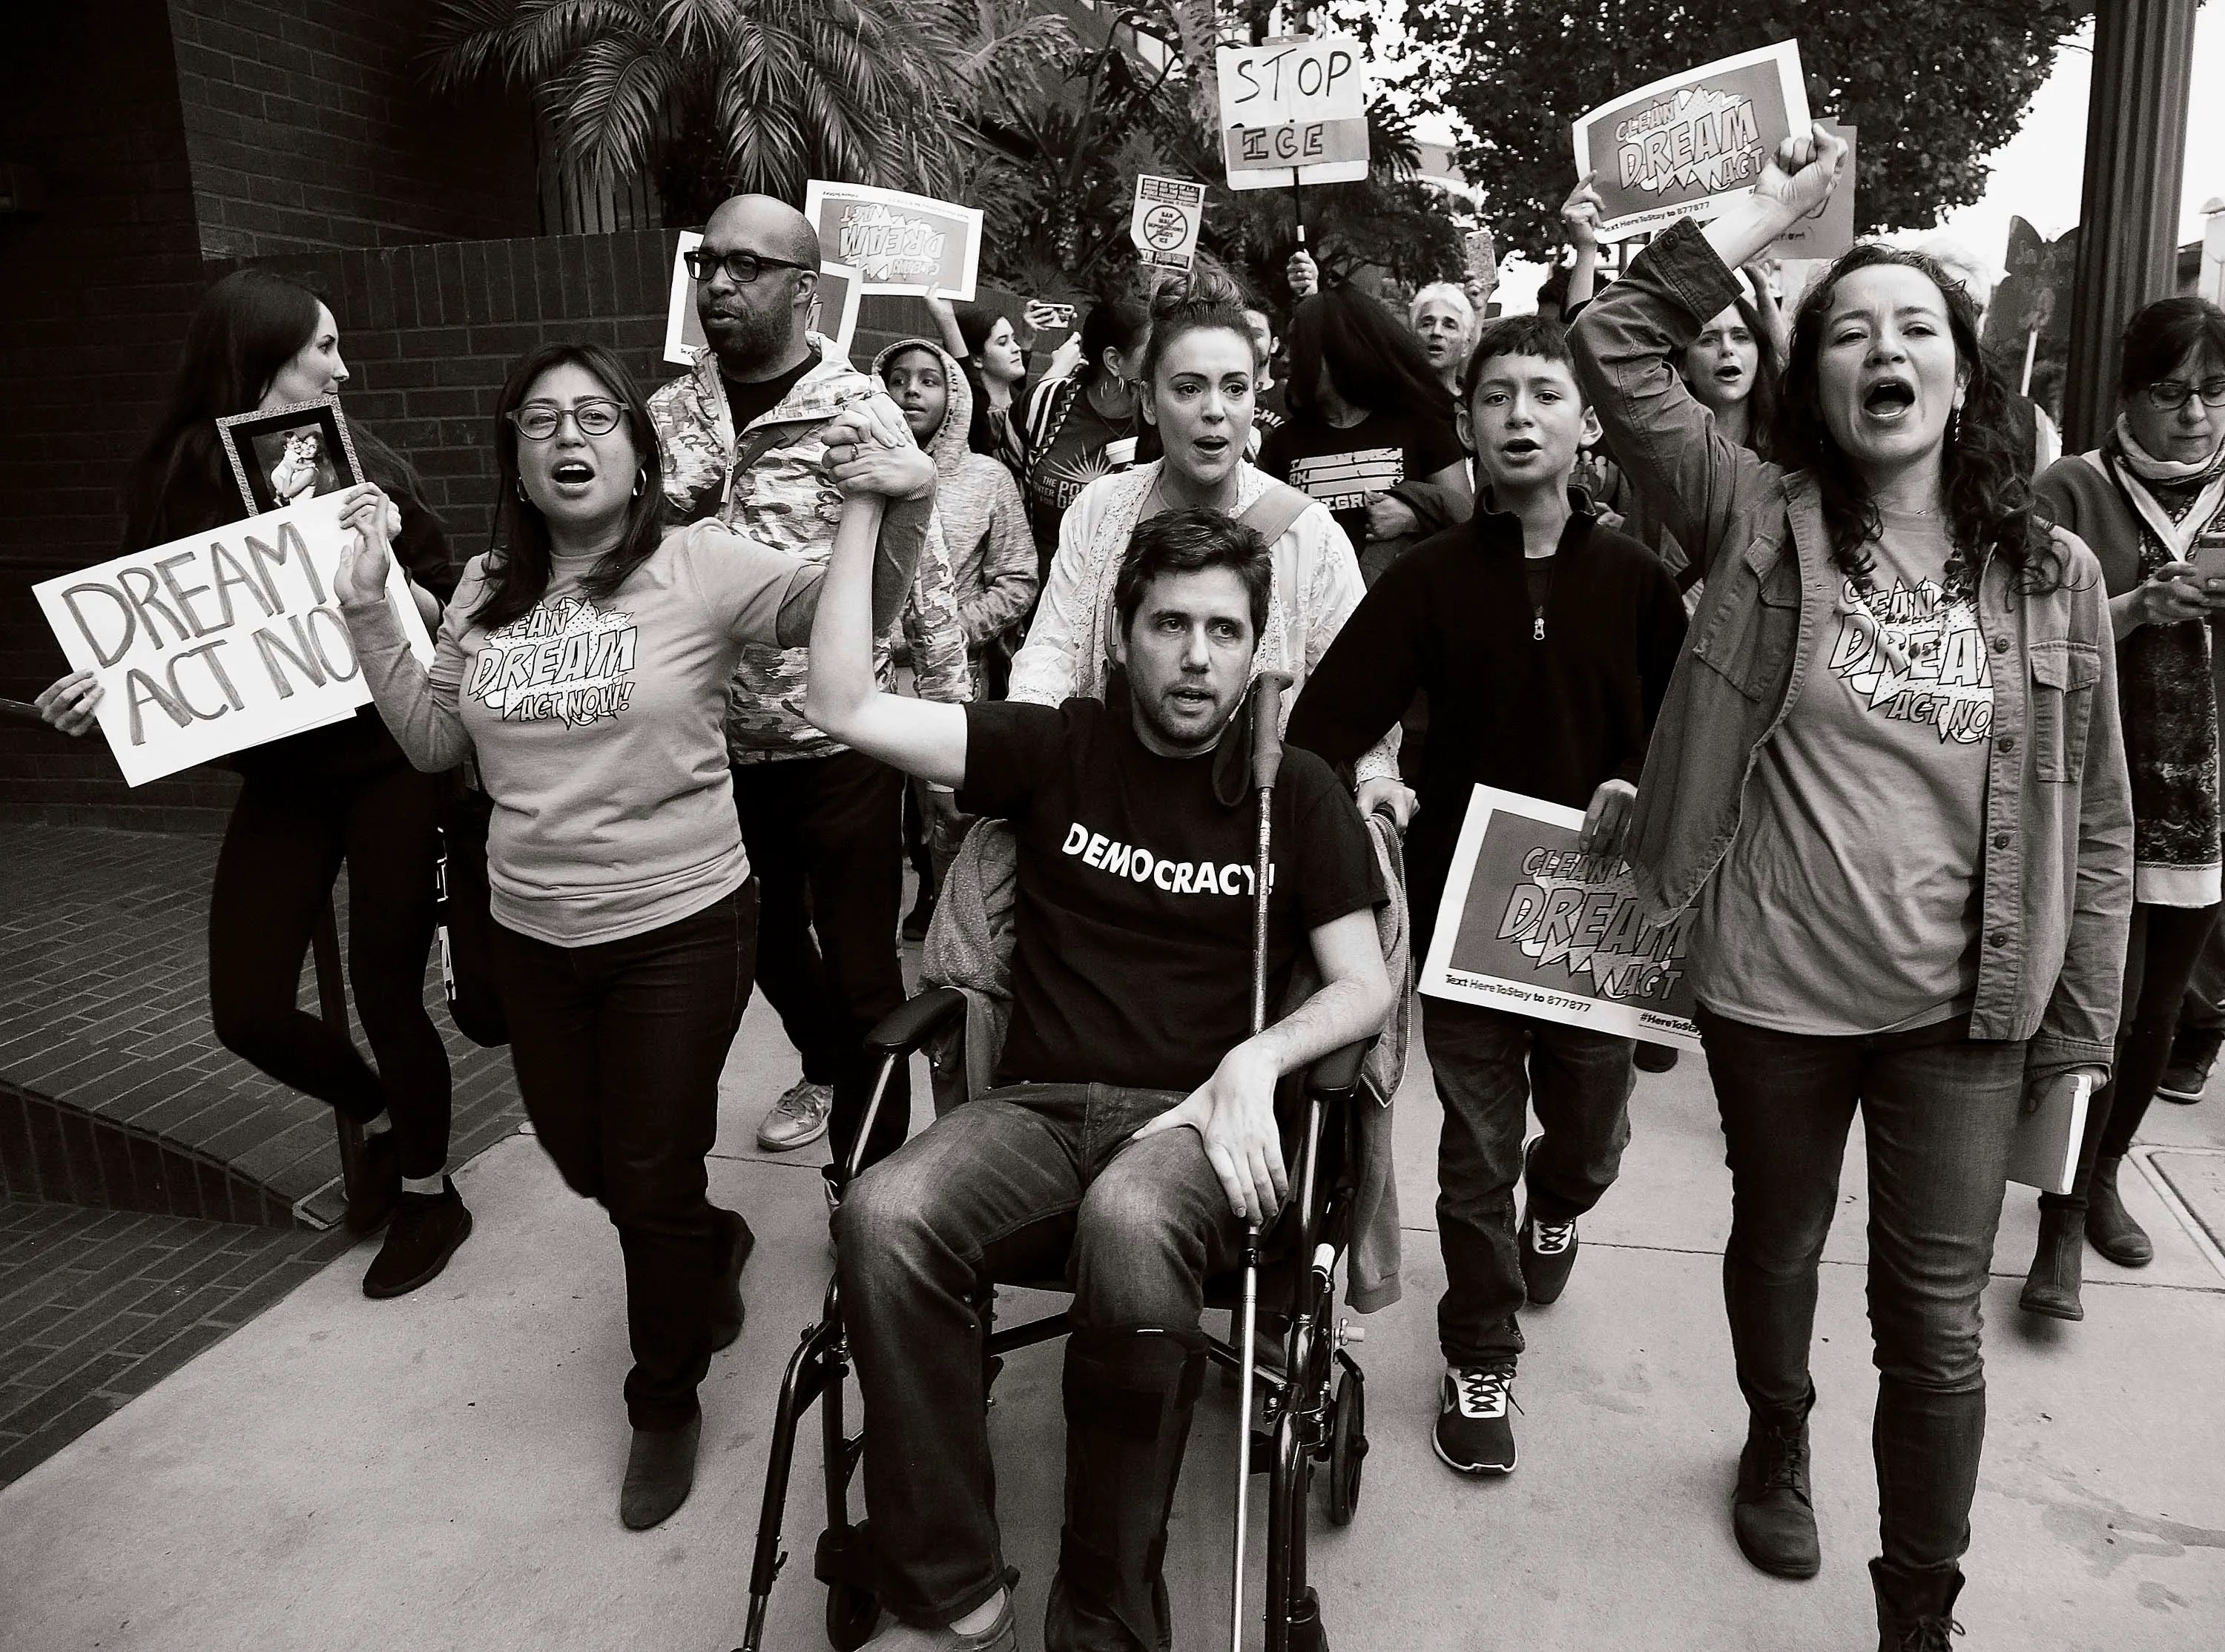 Cristina Jiménez Moreta, left, and Ady Barkan, in wheelchair, lead a small delegation to the office of California Democratic Sen. Dianne Feinstein, urging the Democrats to protect the Deferred Action for Childhood Arrivals (DACA) program in Los Angeles,  Jan. 3, 2018.